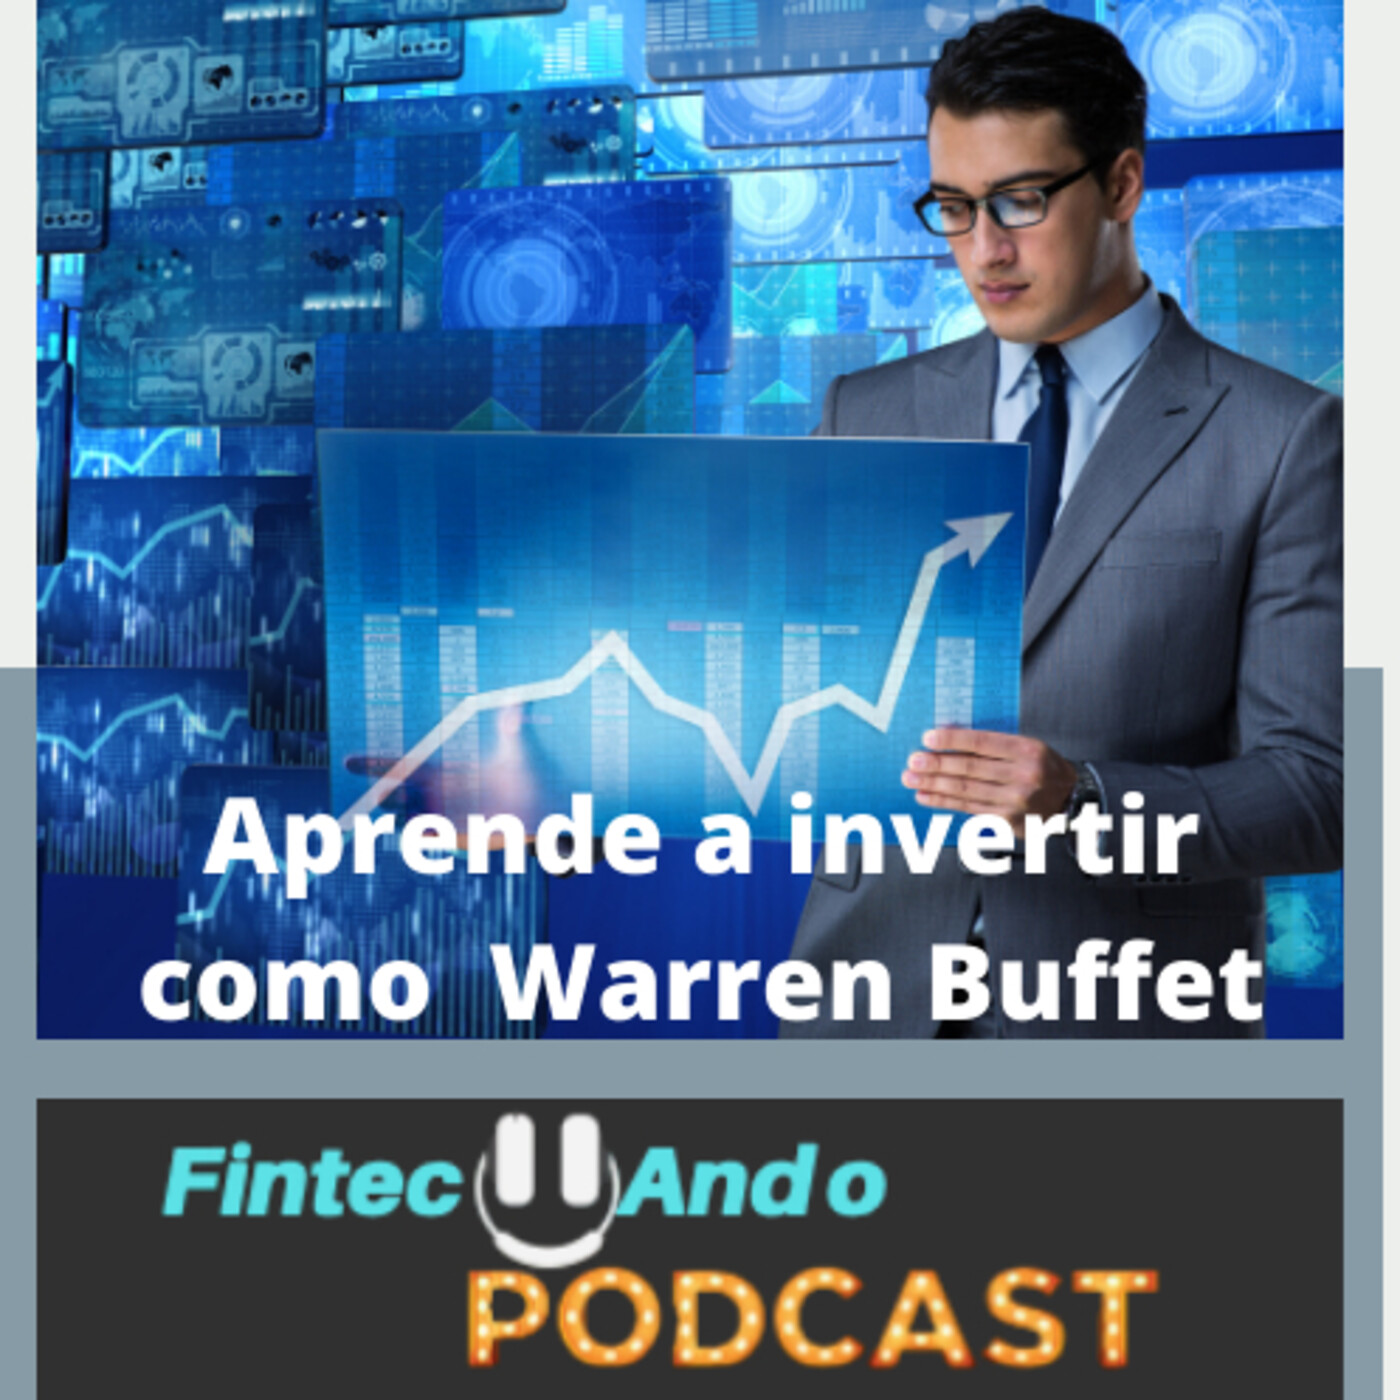 #19 Aprende a invertir como Warren Buffet